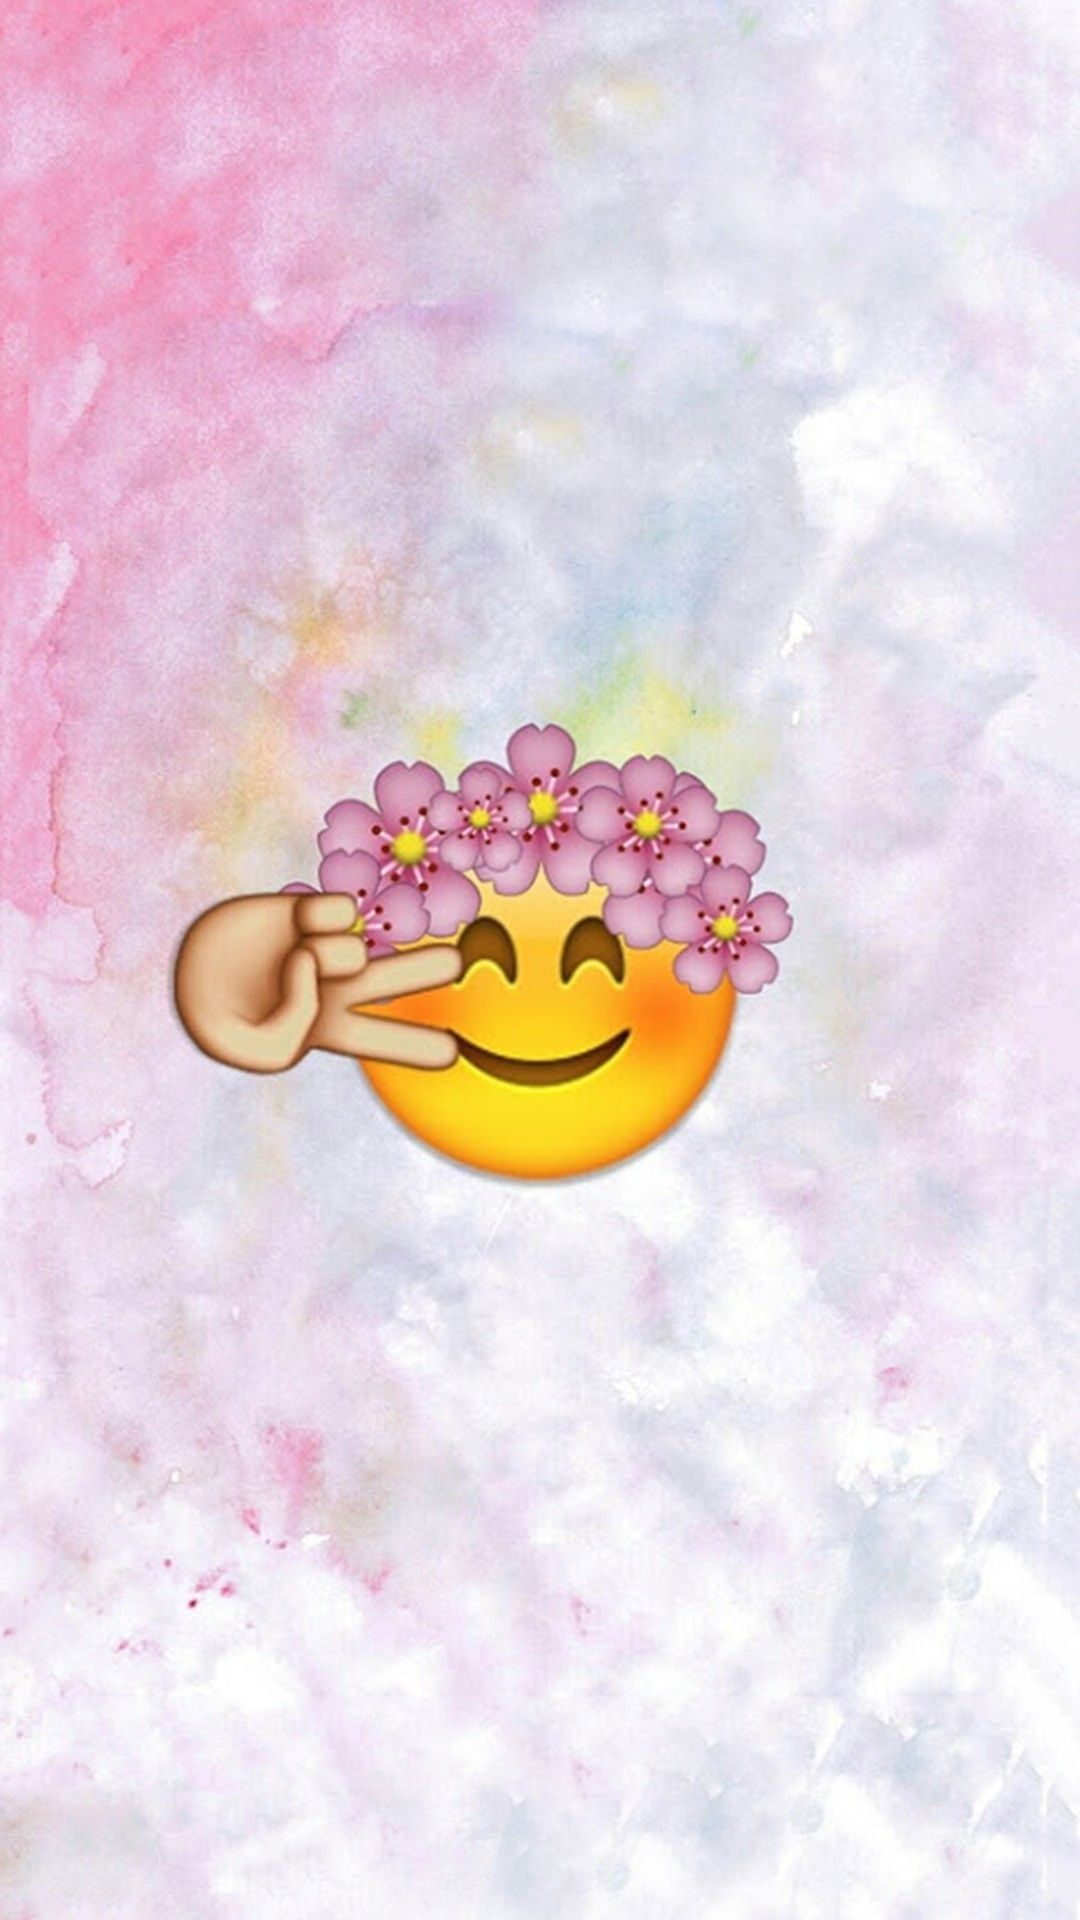 Emoji Hd Wallpapers Hupages Download Iphone Wallpapers Iphone Wallpaper Queen Emoji Wallpaper Iphone Cute Emoji Wallpaper